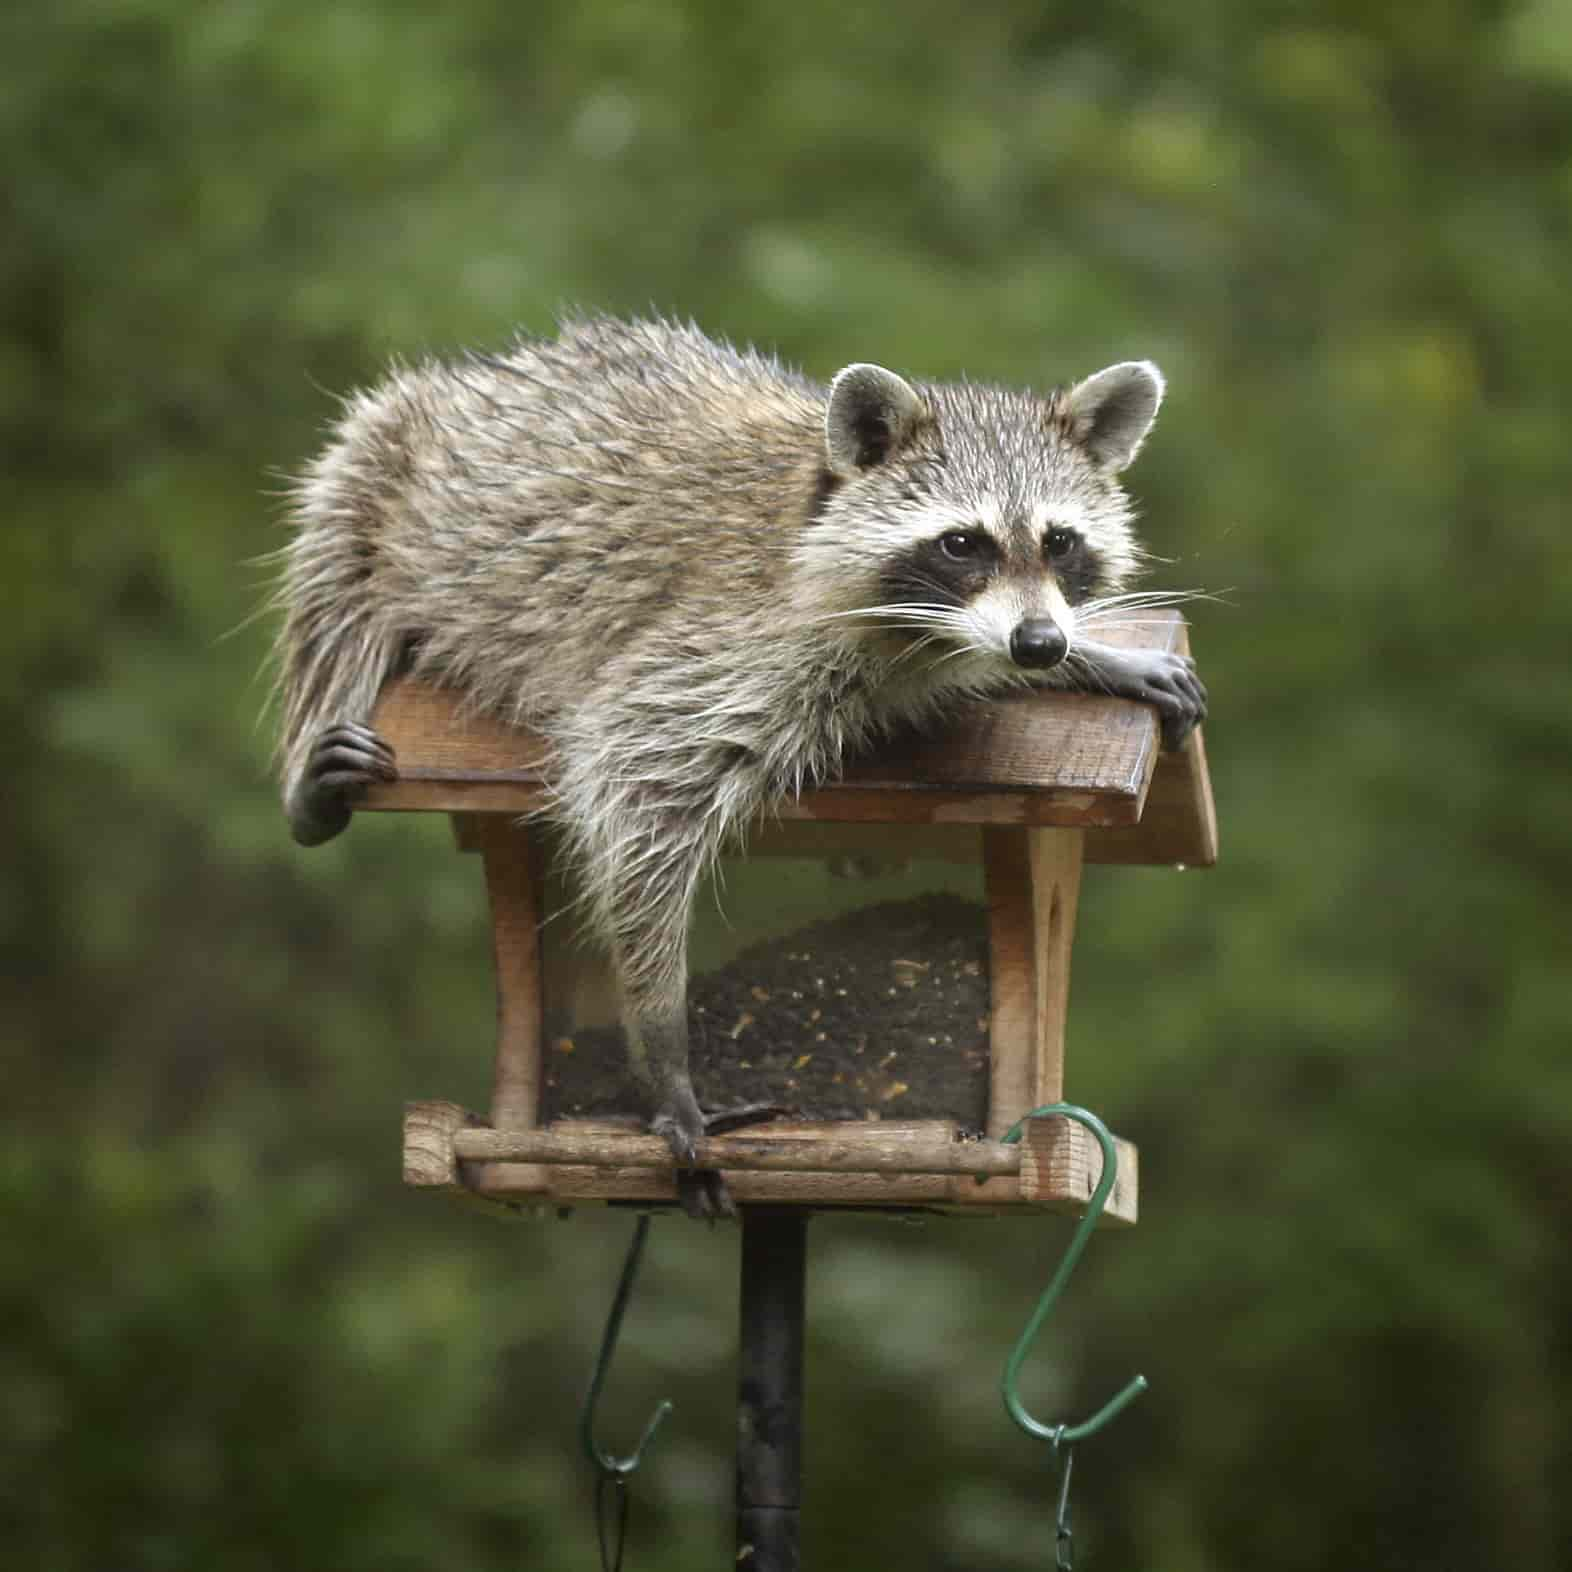 Raccoon-on-bird-feeder1-min